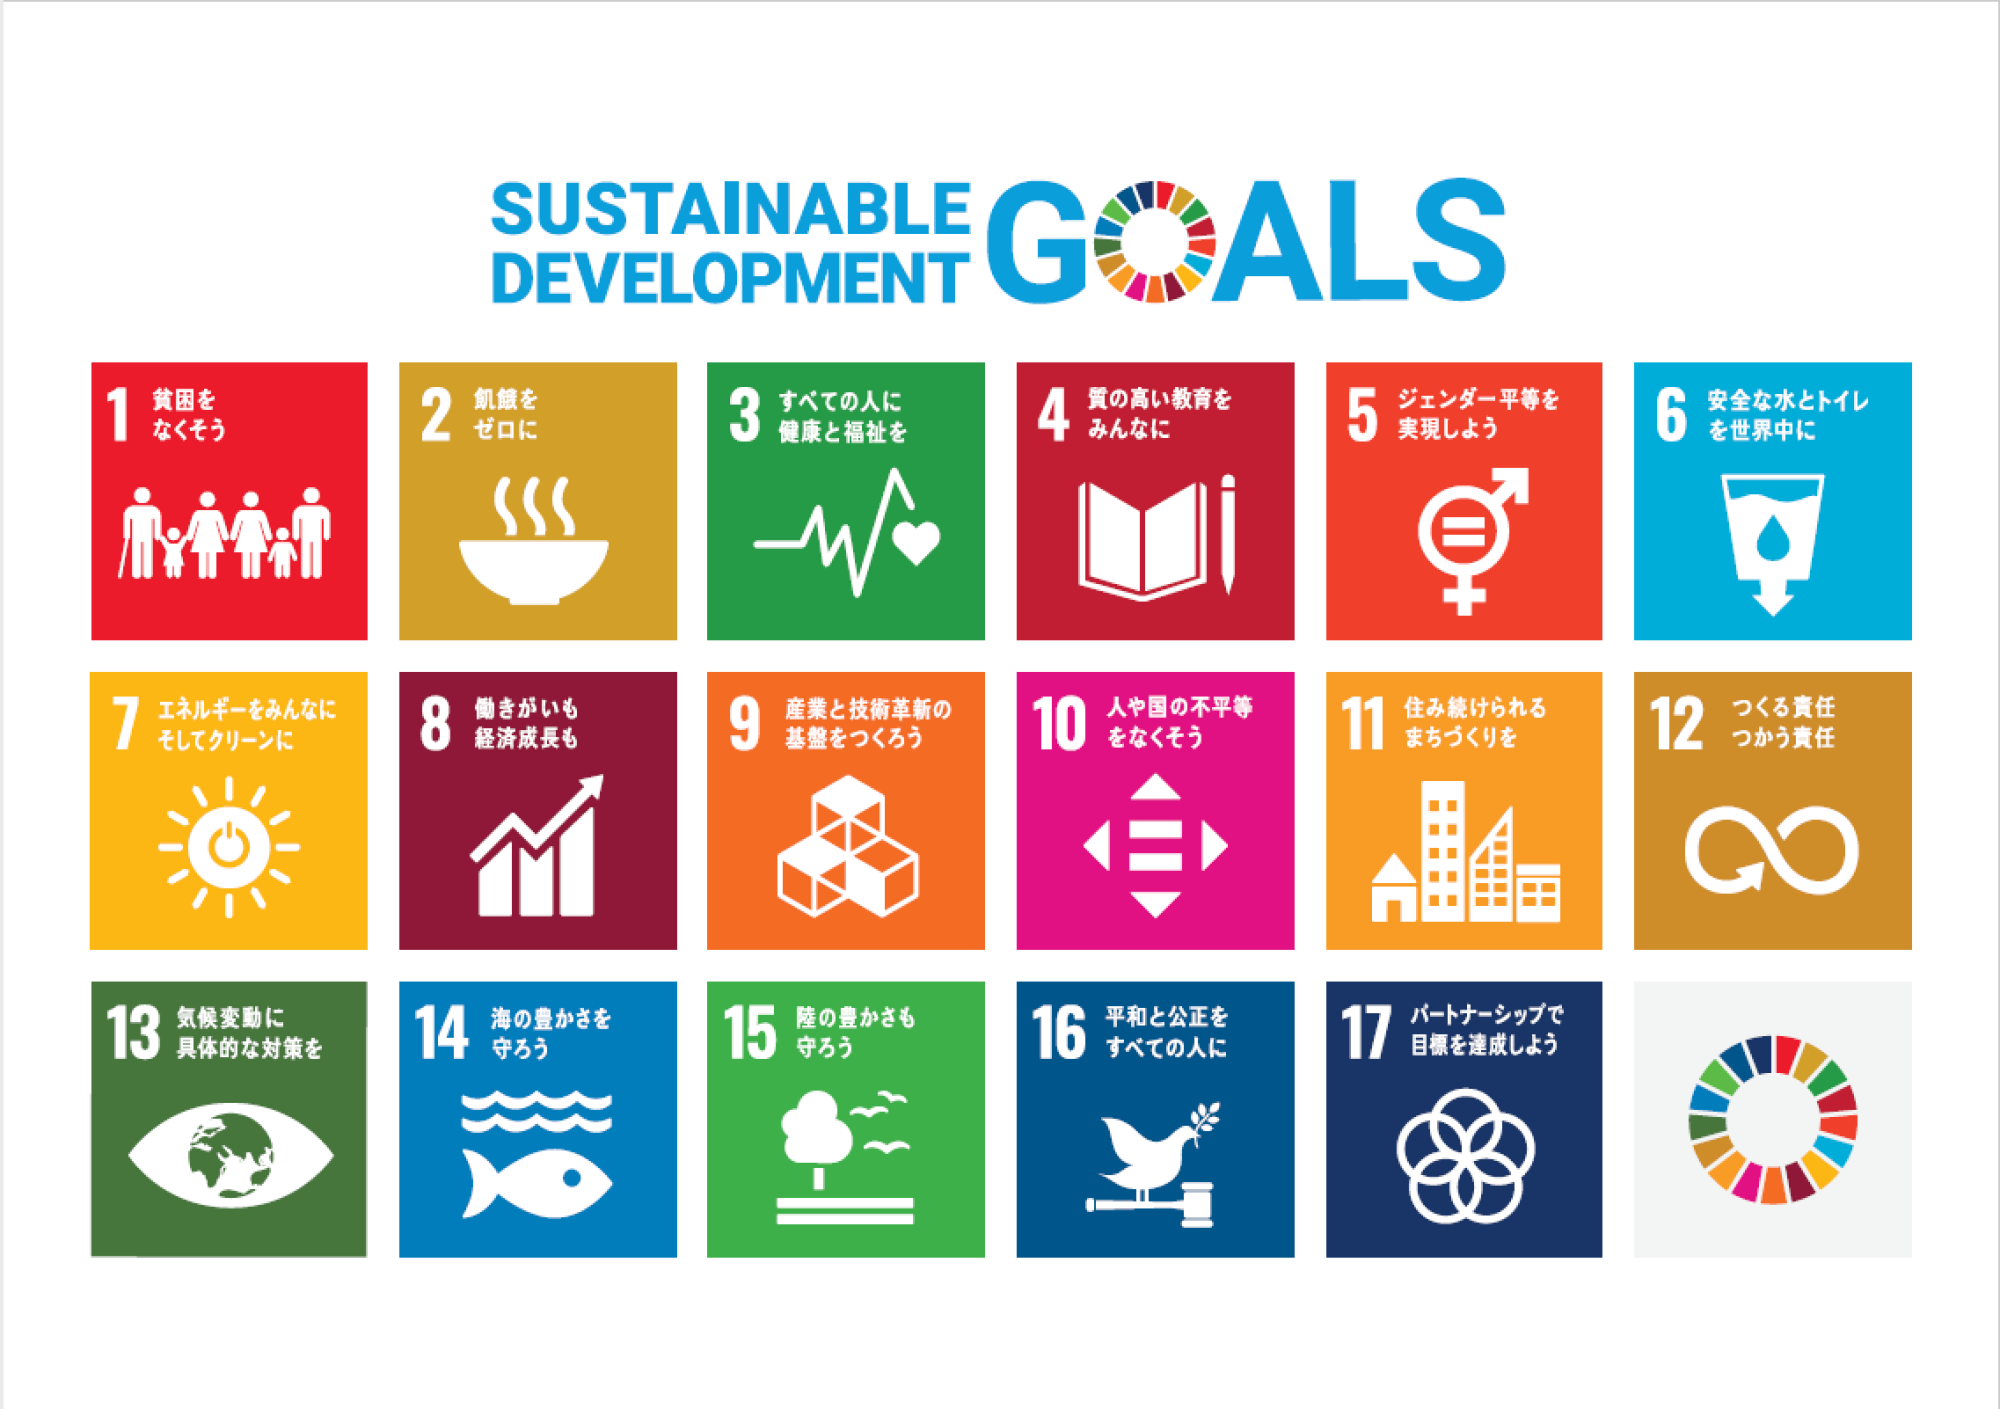 sdgs_poster_2000x1409.png